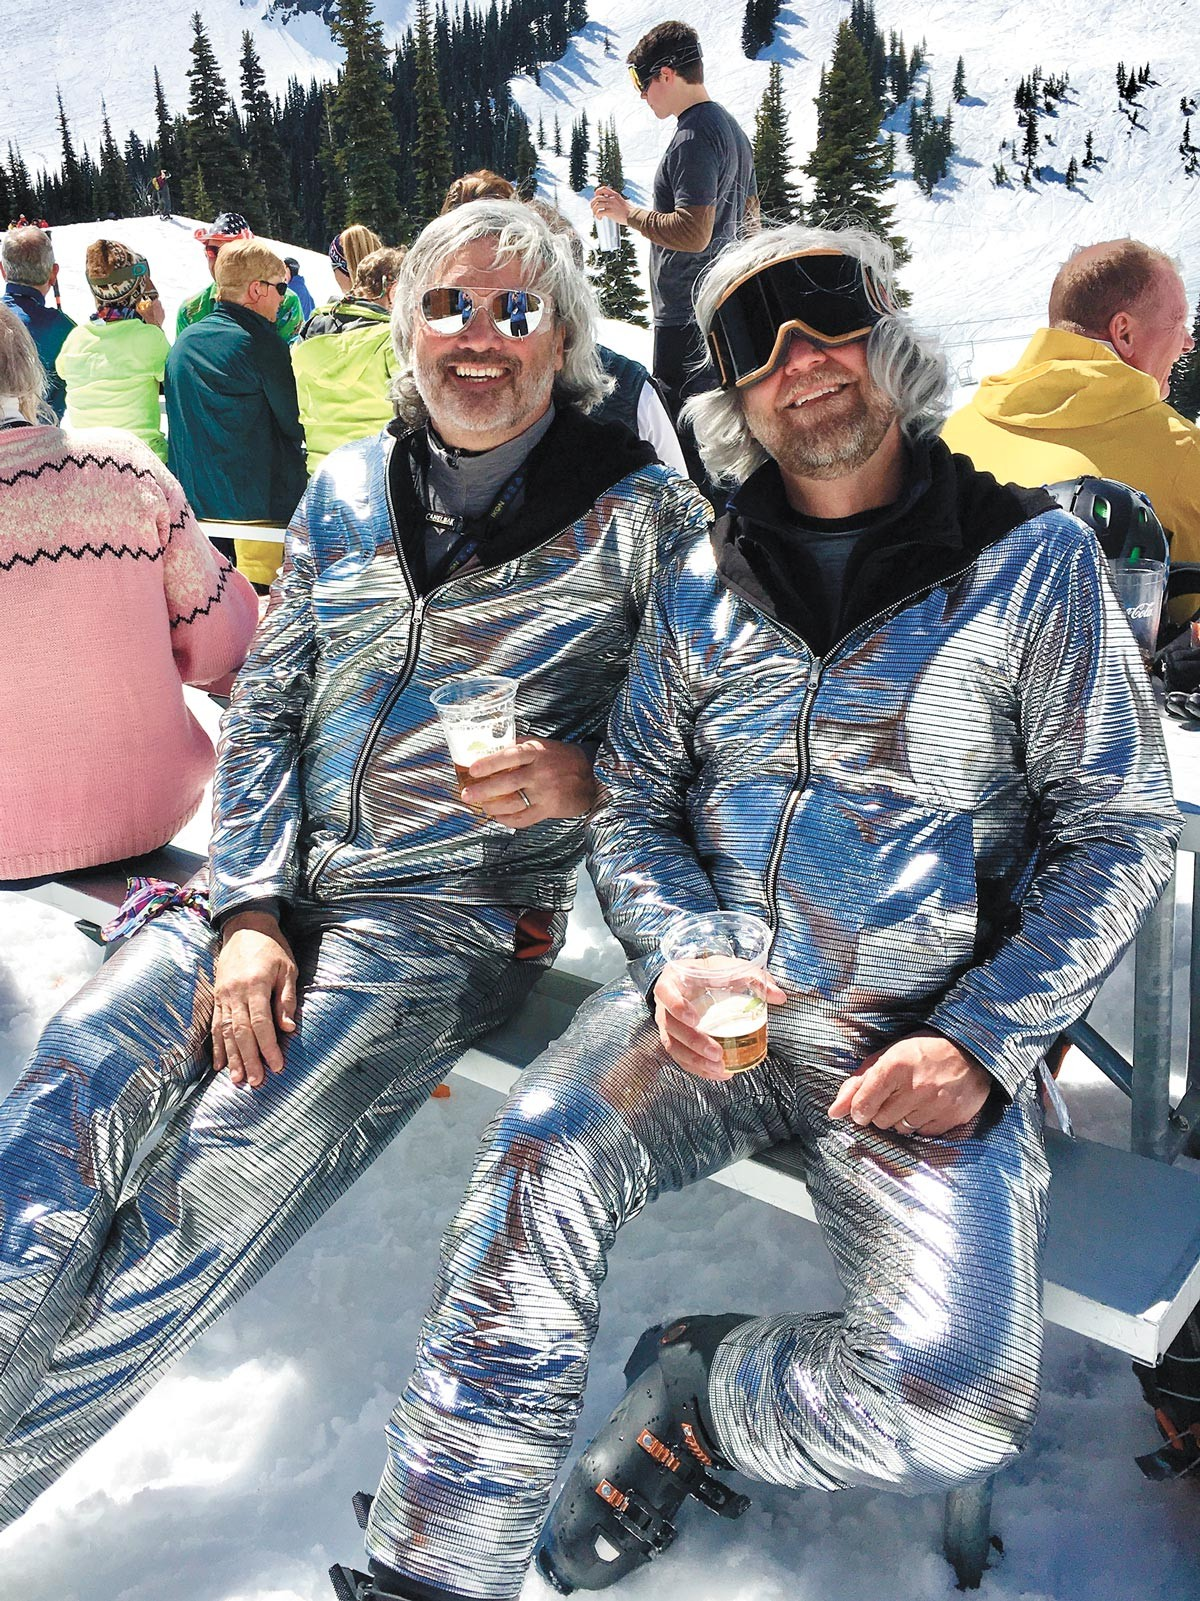 How to find a Winter Friend? Matching ski suits! - COURTESY JOHN GROLLMUS